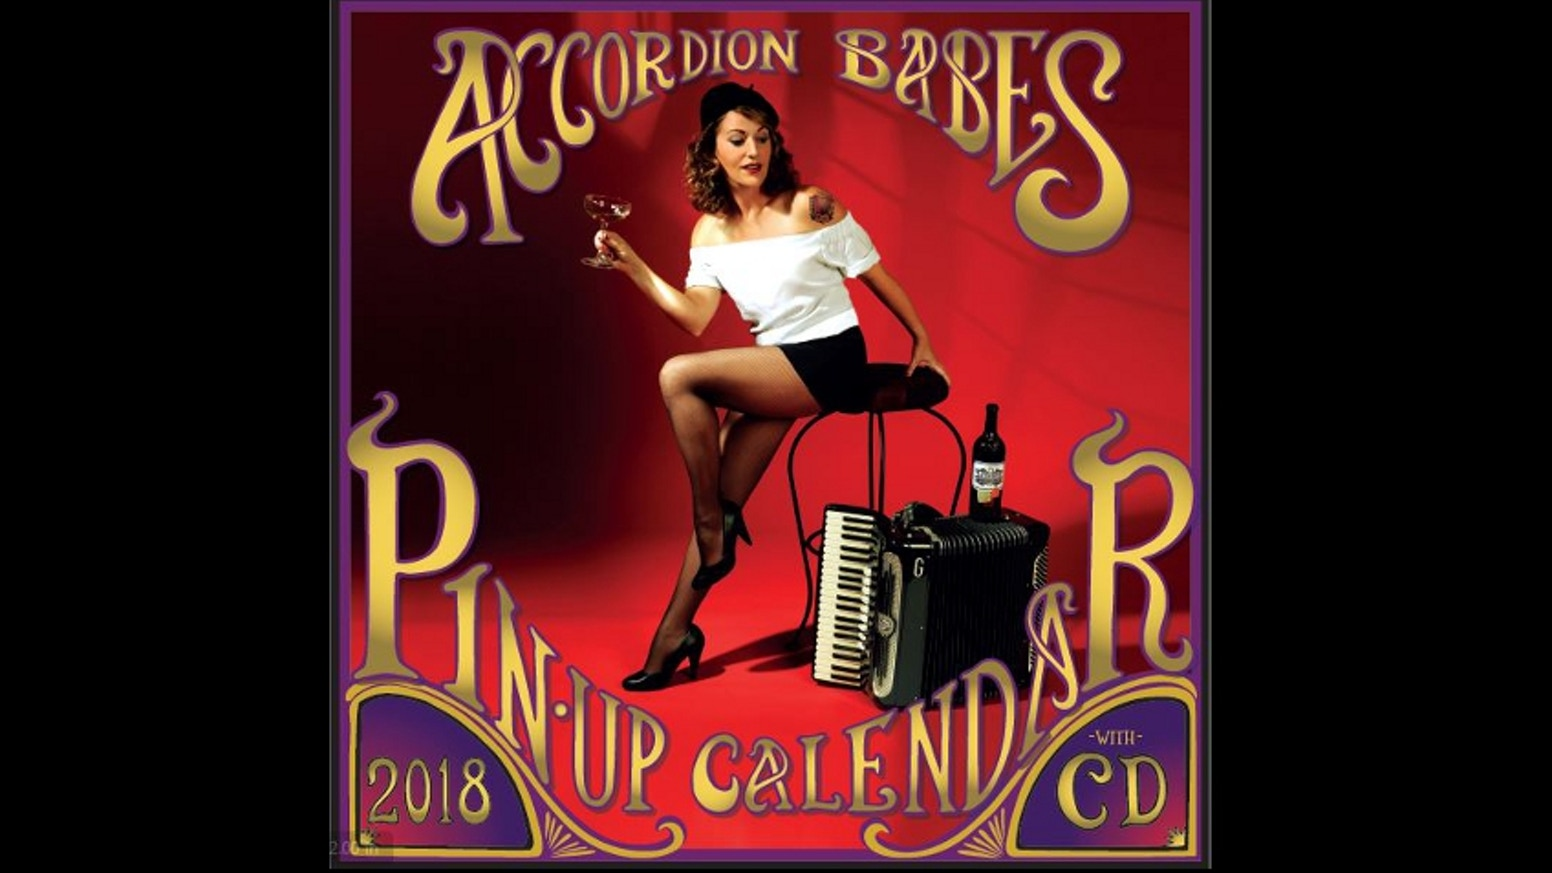 The Accordion Babes Pin-Up Calendar is the world's first sexy calendar to come with a CD, with music from the 13 indie artists inside.